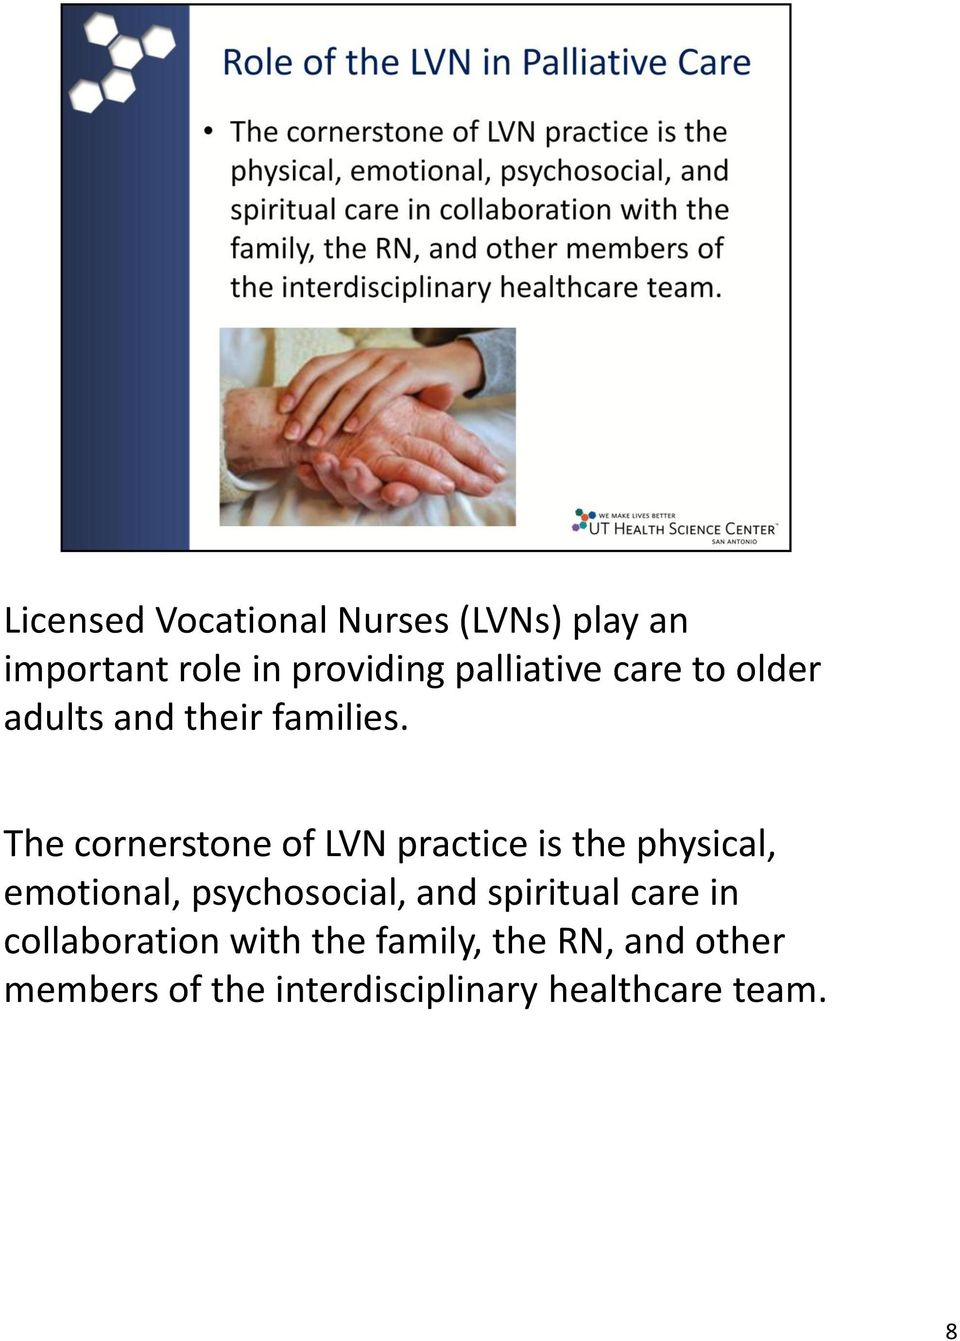 The cornerstone of LVN practice is the physical, emotional, psychosocial, and